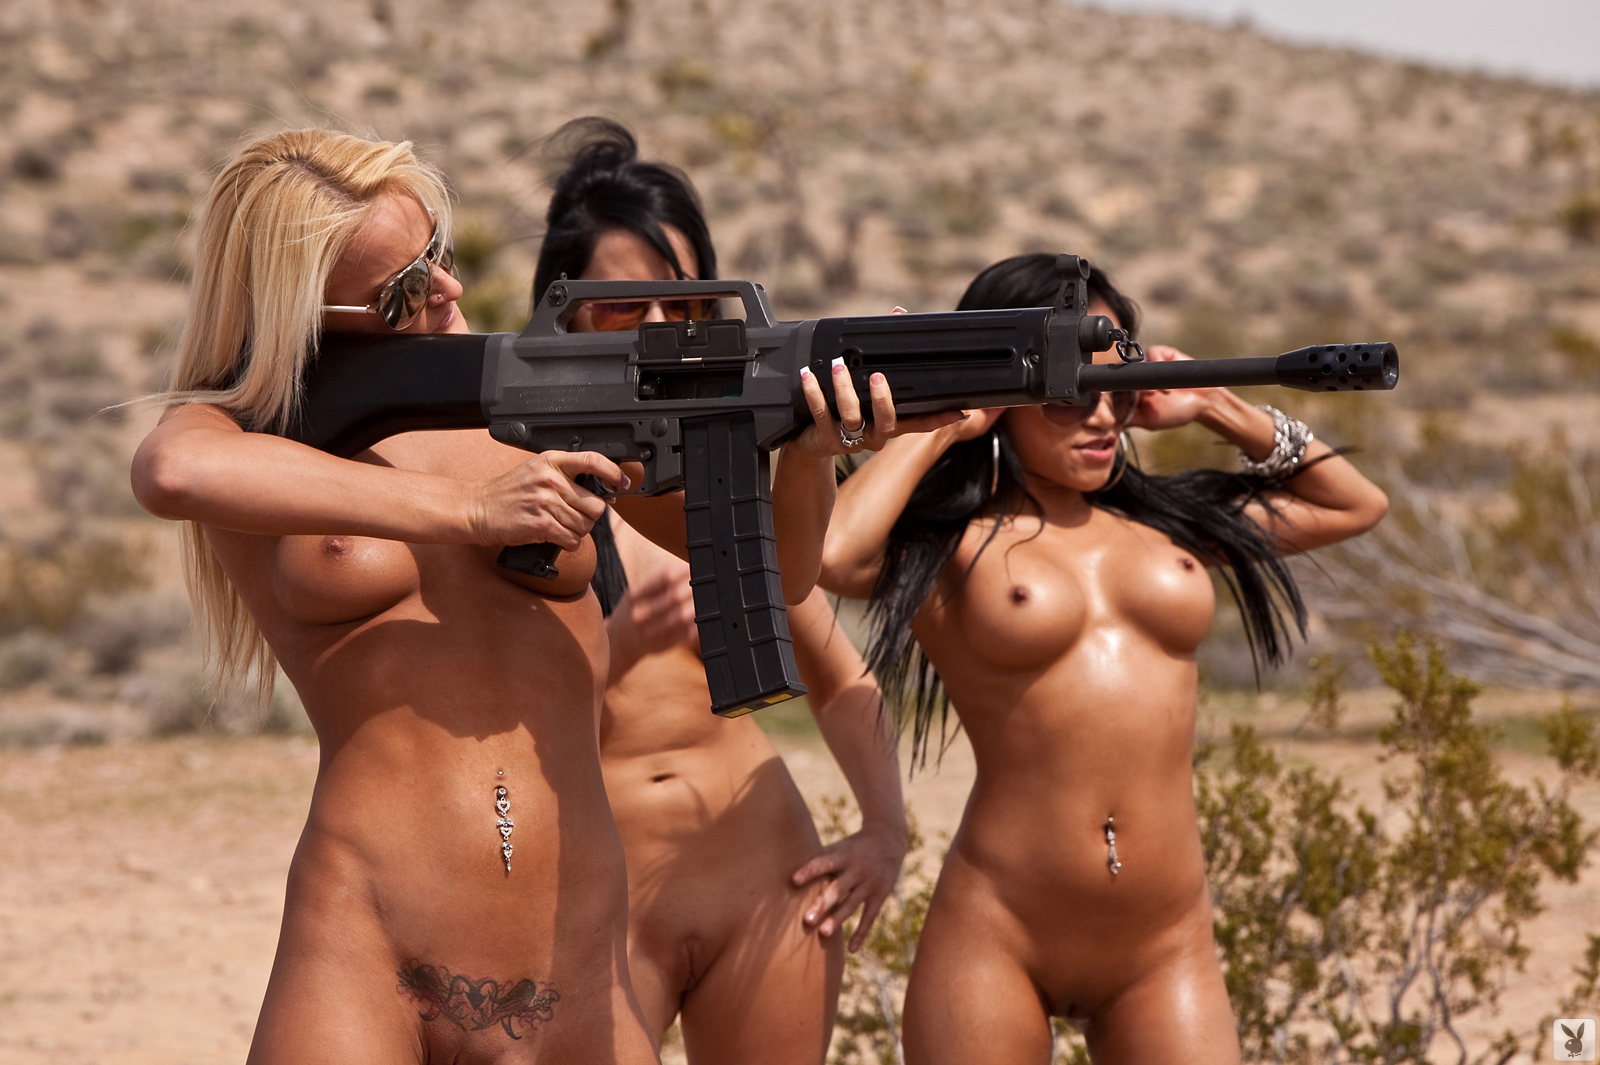 playboy-badass-nude-episode-01-guns-desert-05